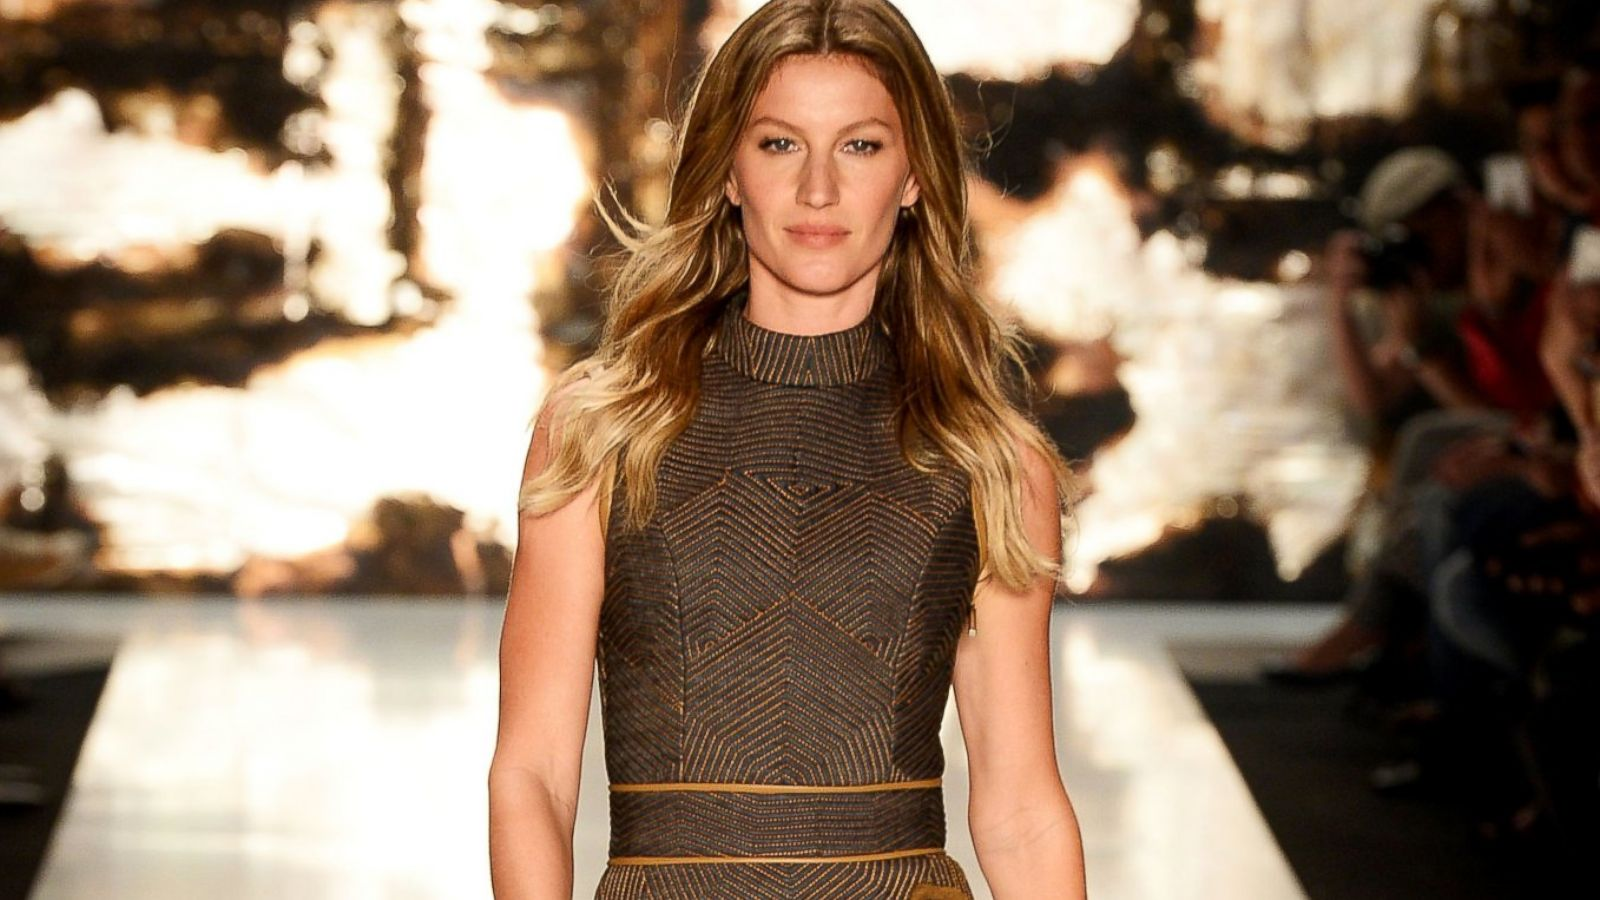 Watch It's Official Gisele Bundchen Retires From the Runway video